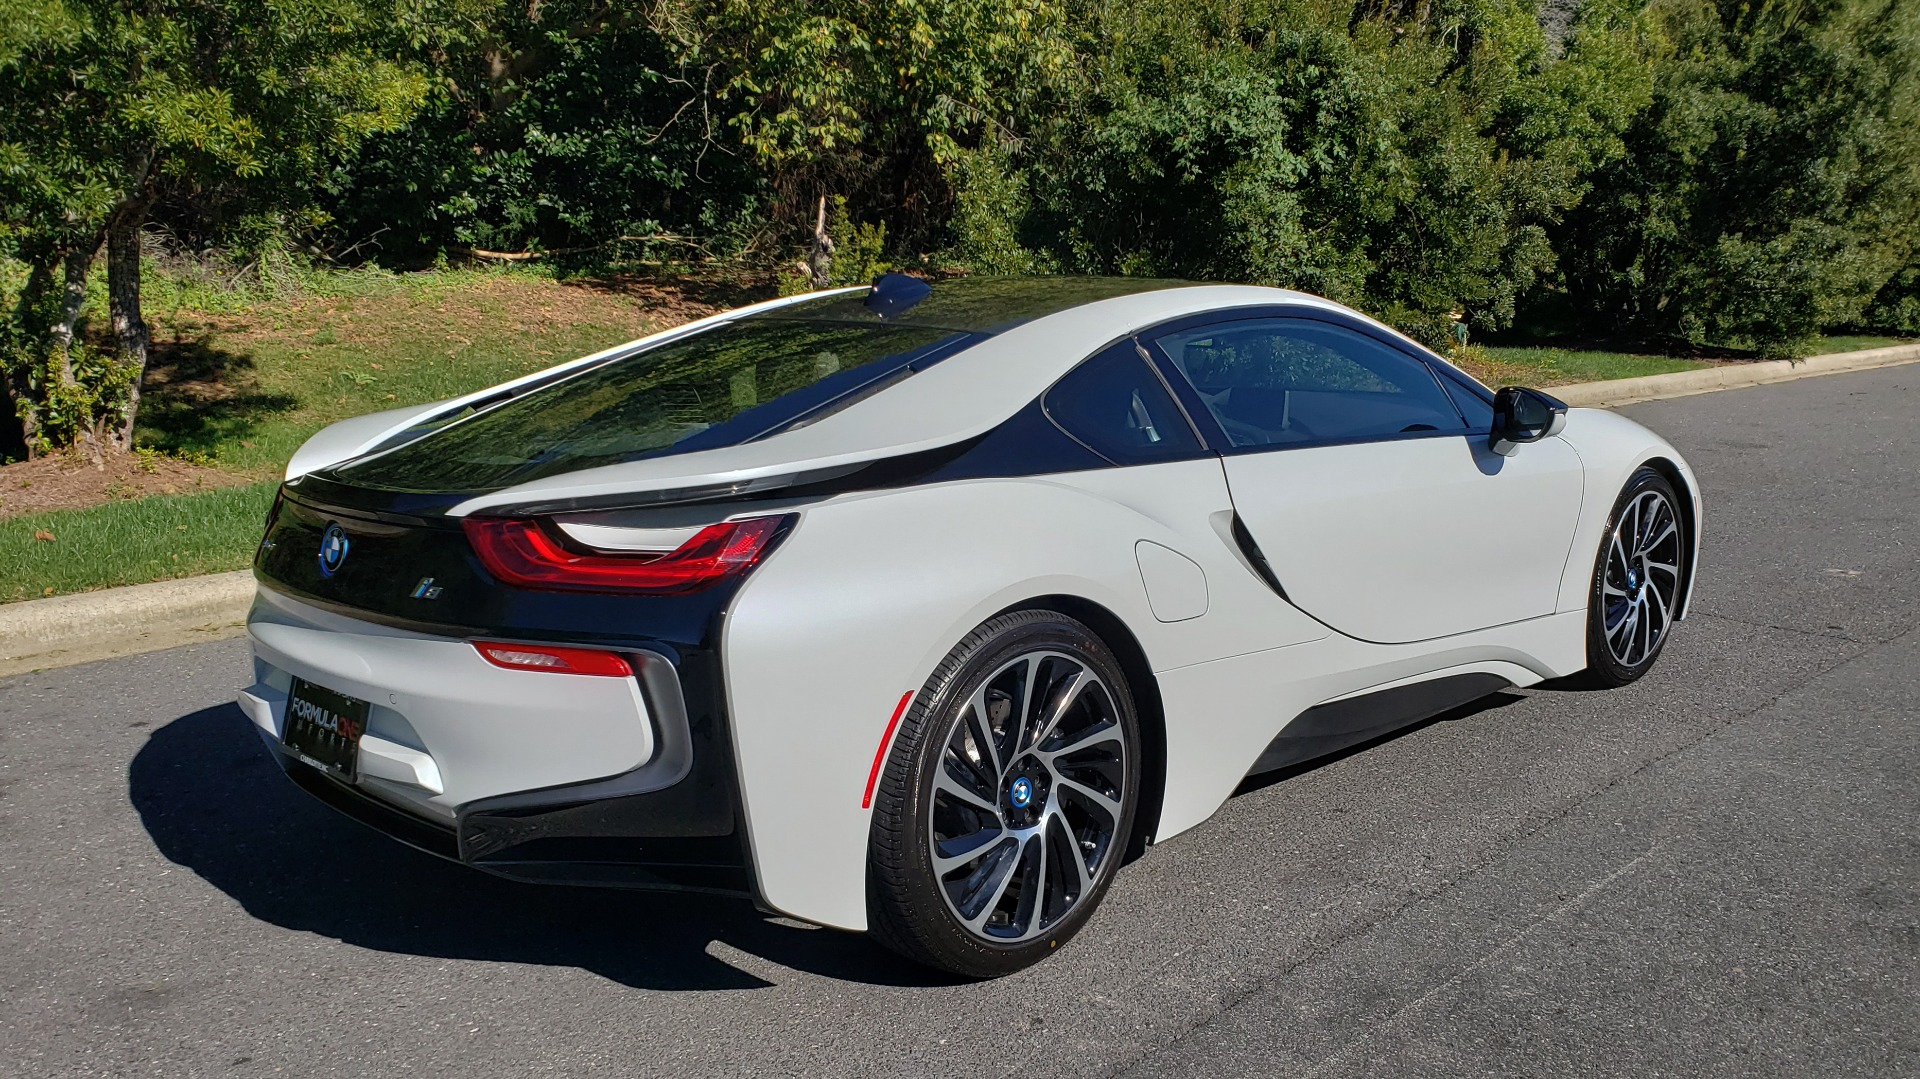 Used 2014 BMW i8 COUPE / TERA WORLD / NAV / CARBON FIBER ROOF / REARVIEW for sale Sold at Formula Imports in Charlotte NC 28227 6